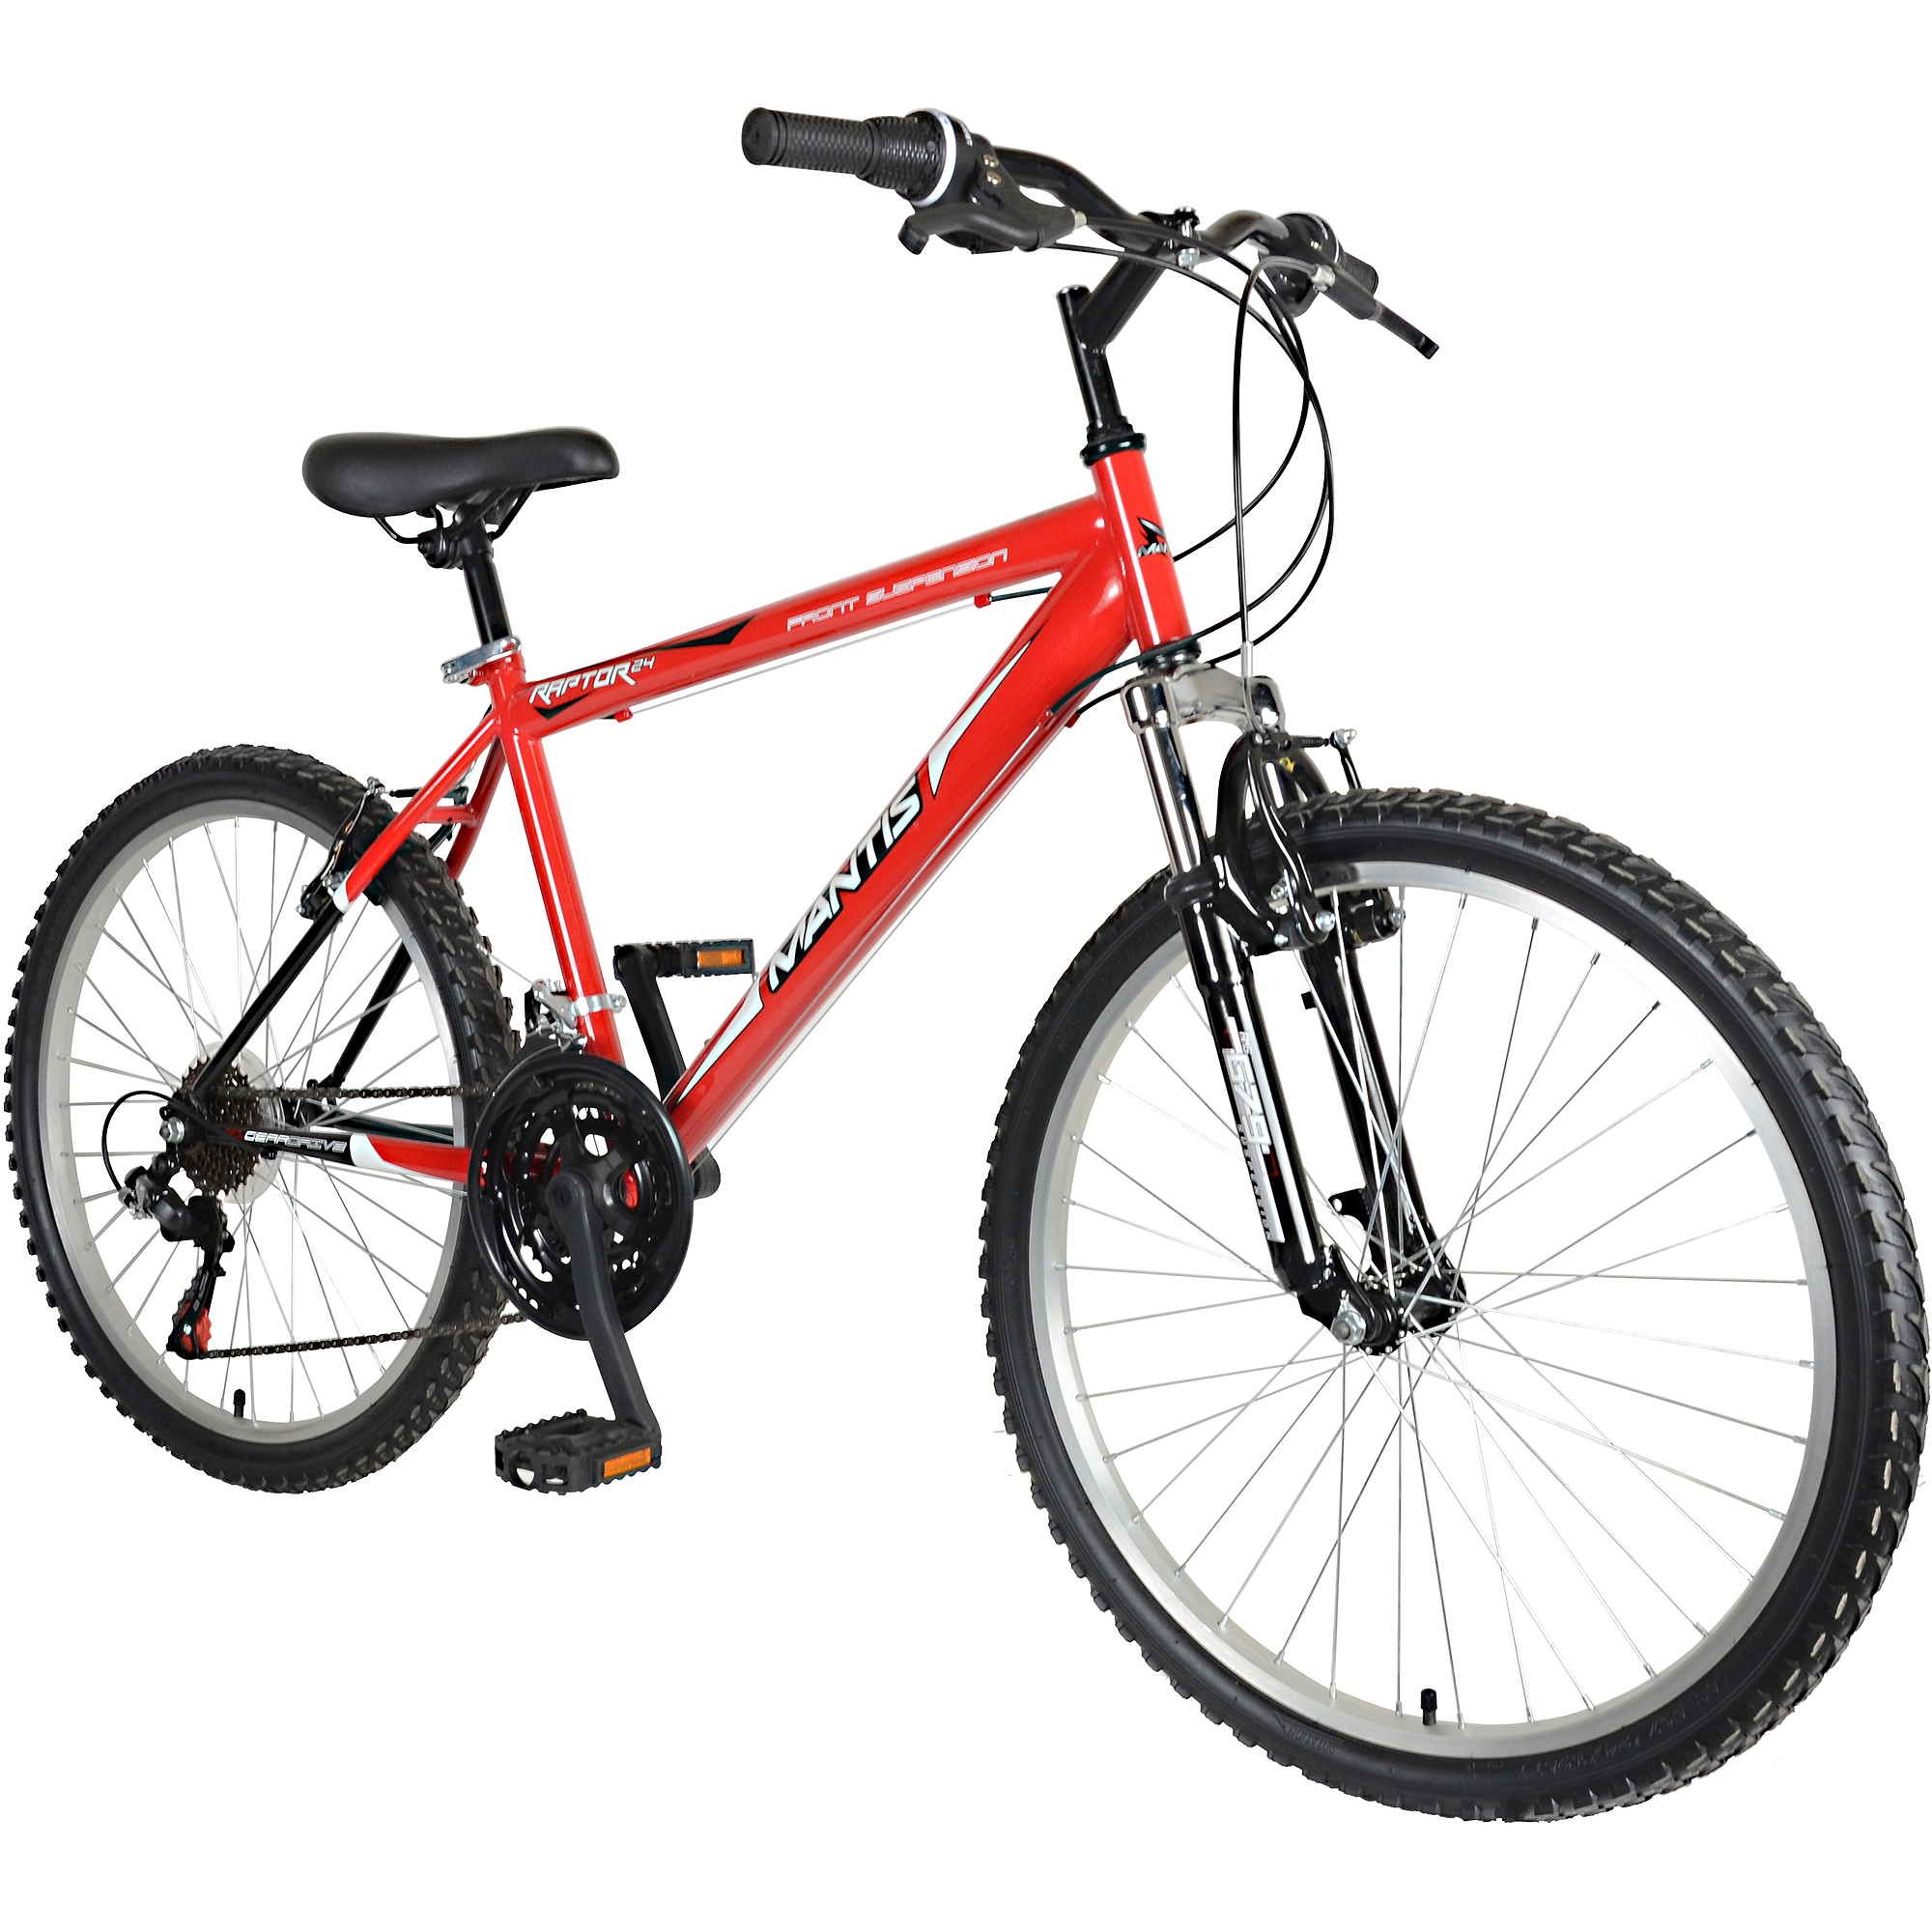 Mantis Raptor B 24 Hardtail MTB Bicycle